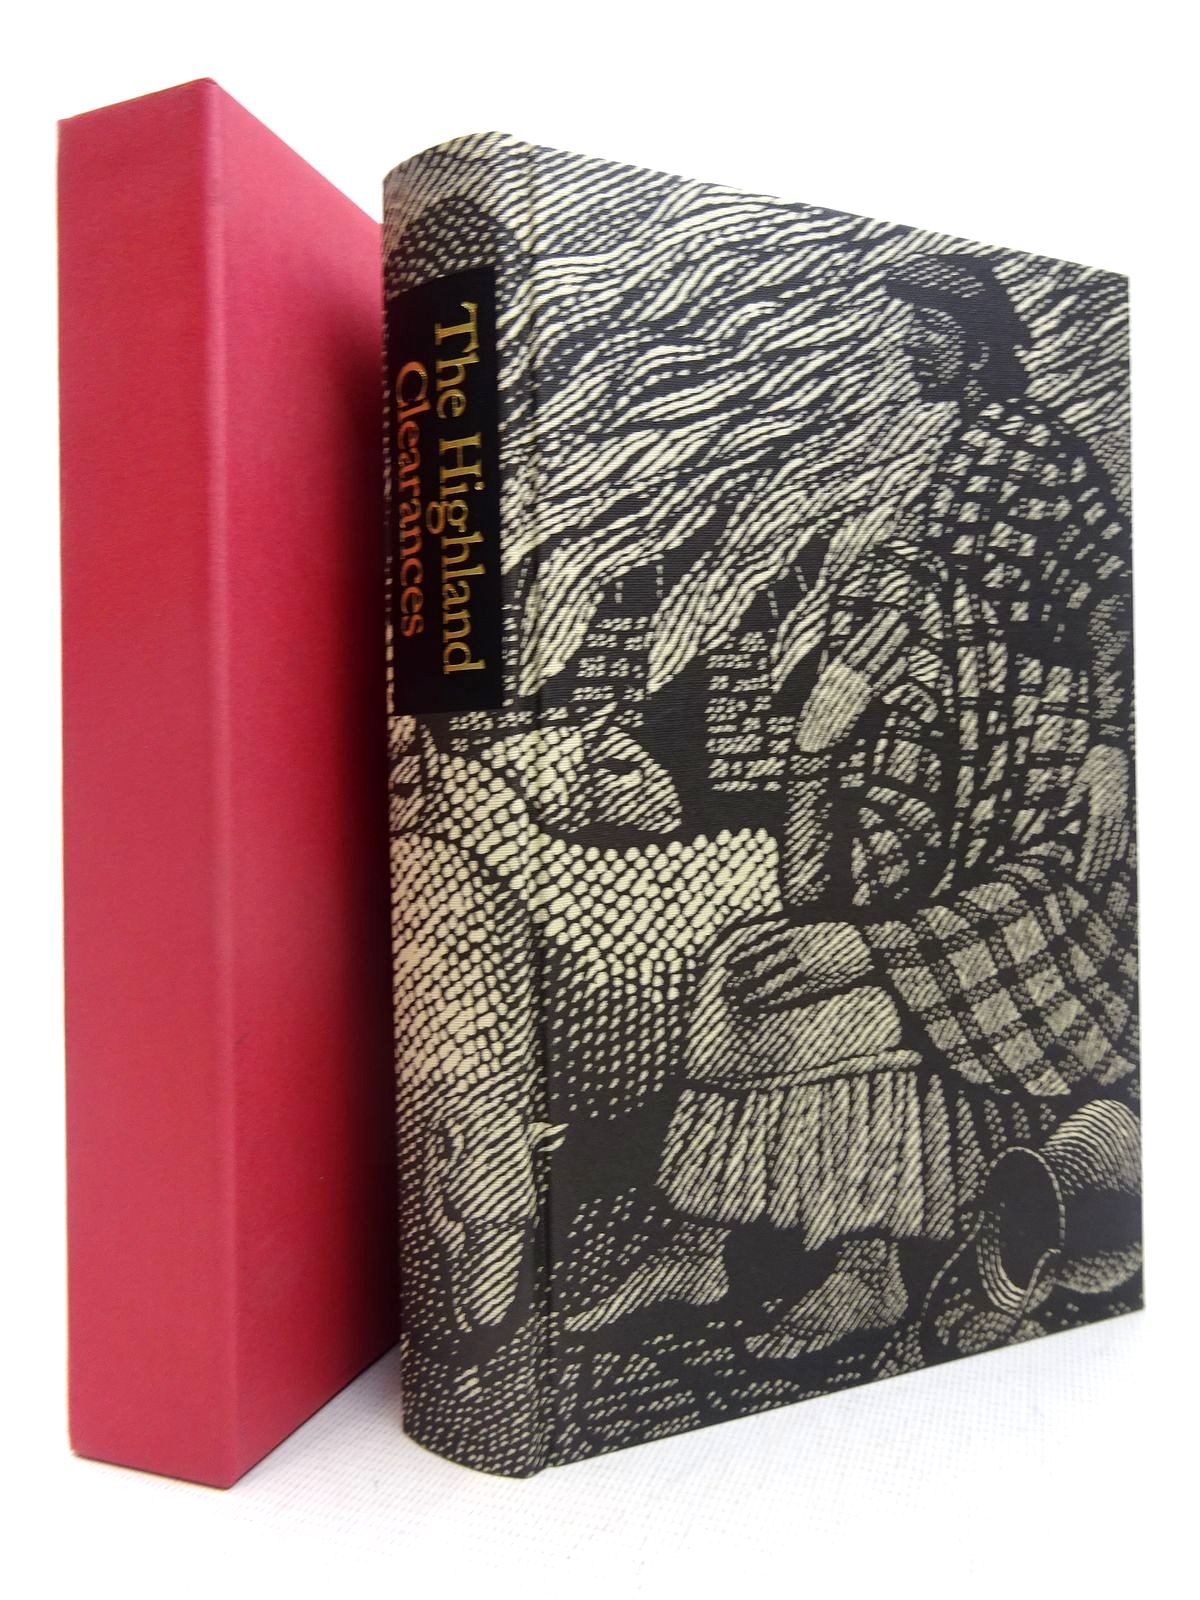 Photo of THE HIGHLAND CLEARANCES written by Prebble, John illustrated by Brockway, Harry published by Folio Society (STOCK CODE: 1816690)  for sale by Stella & Rose's Books